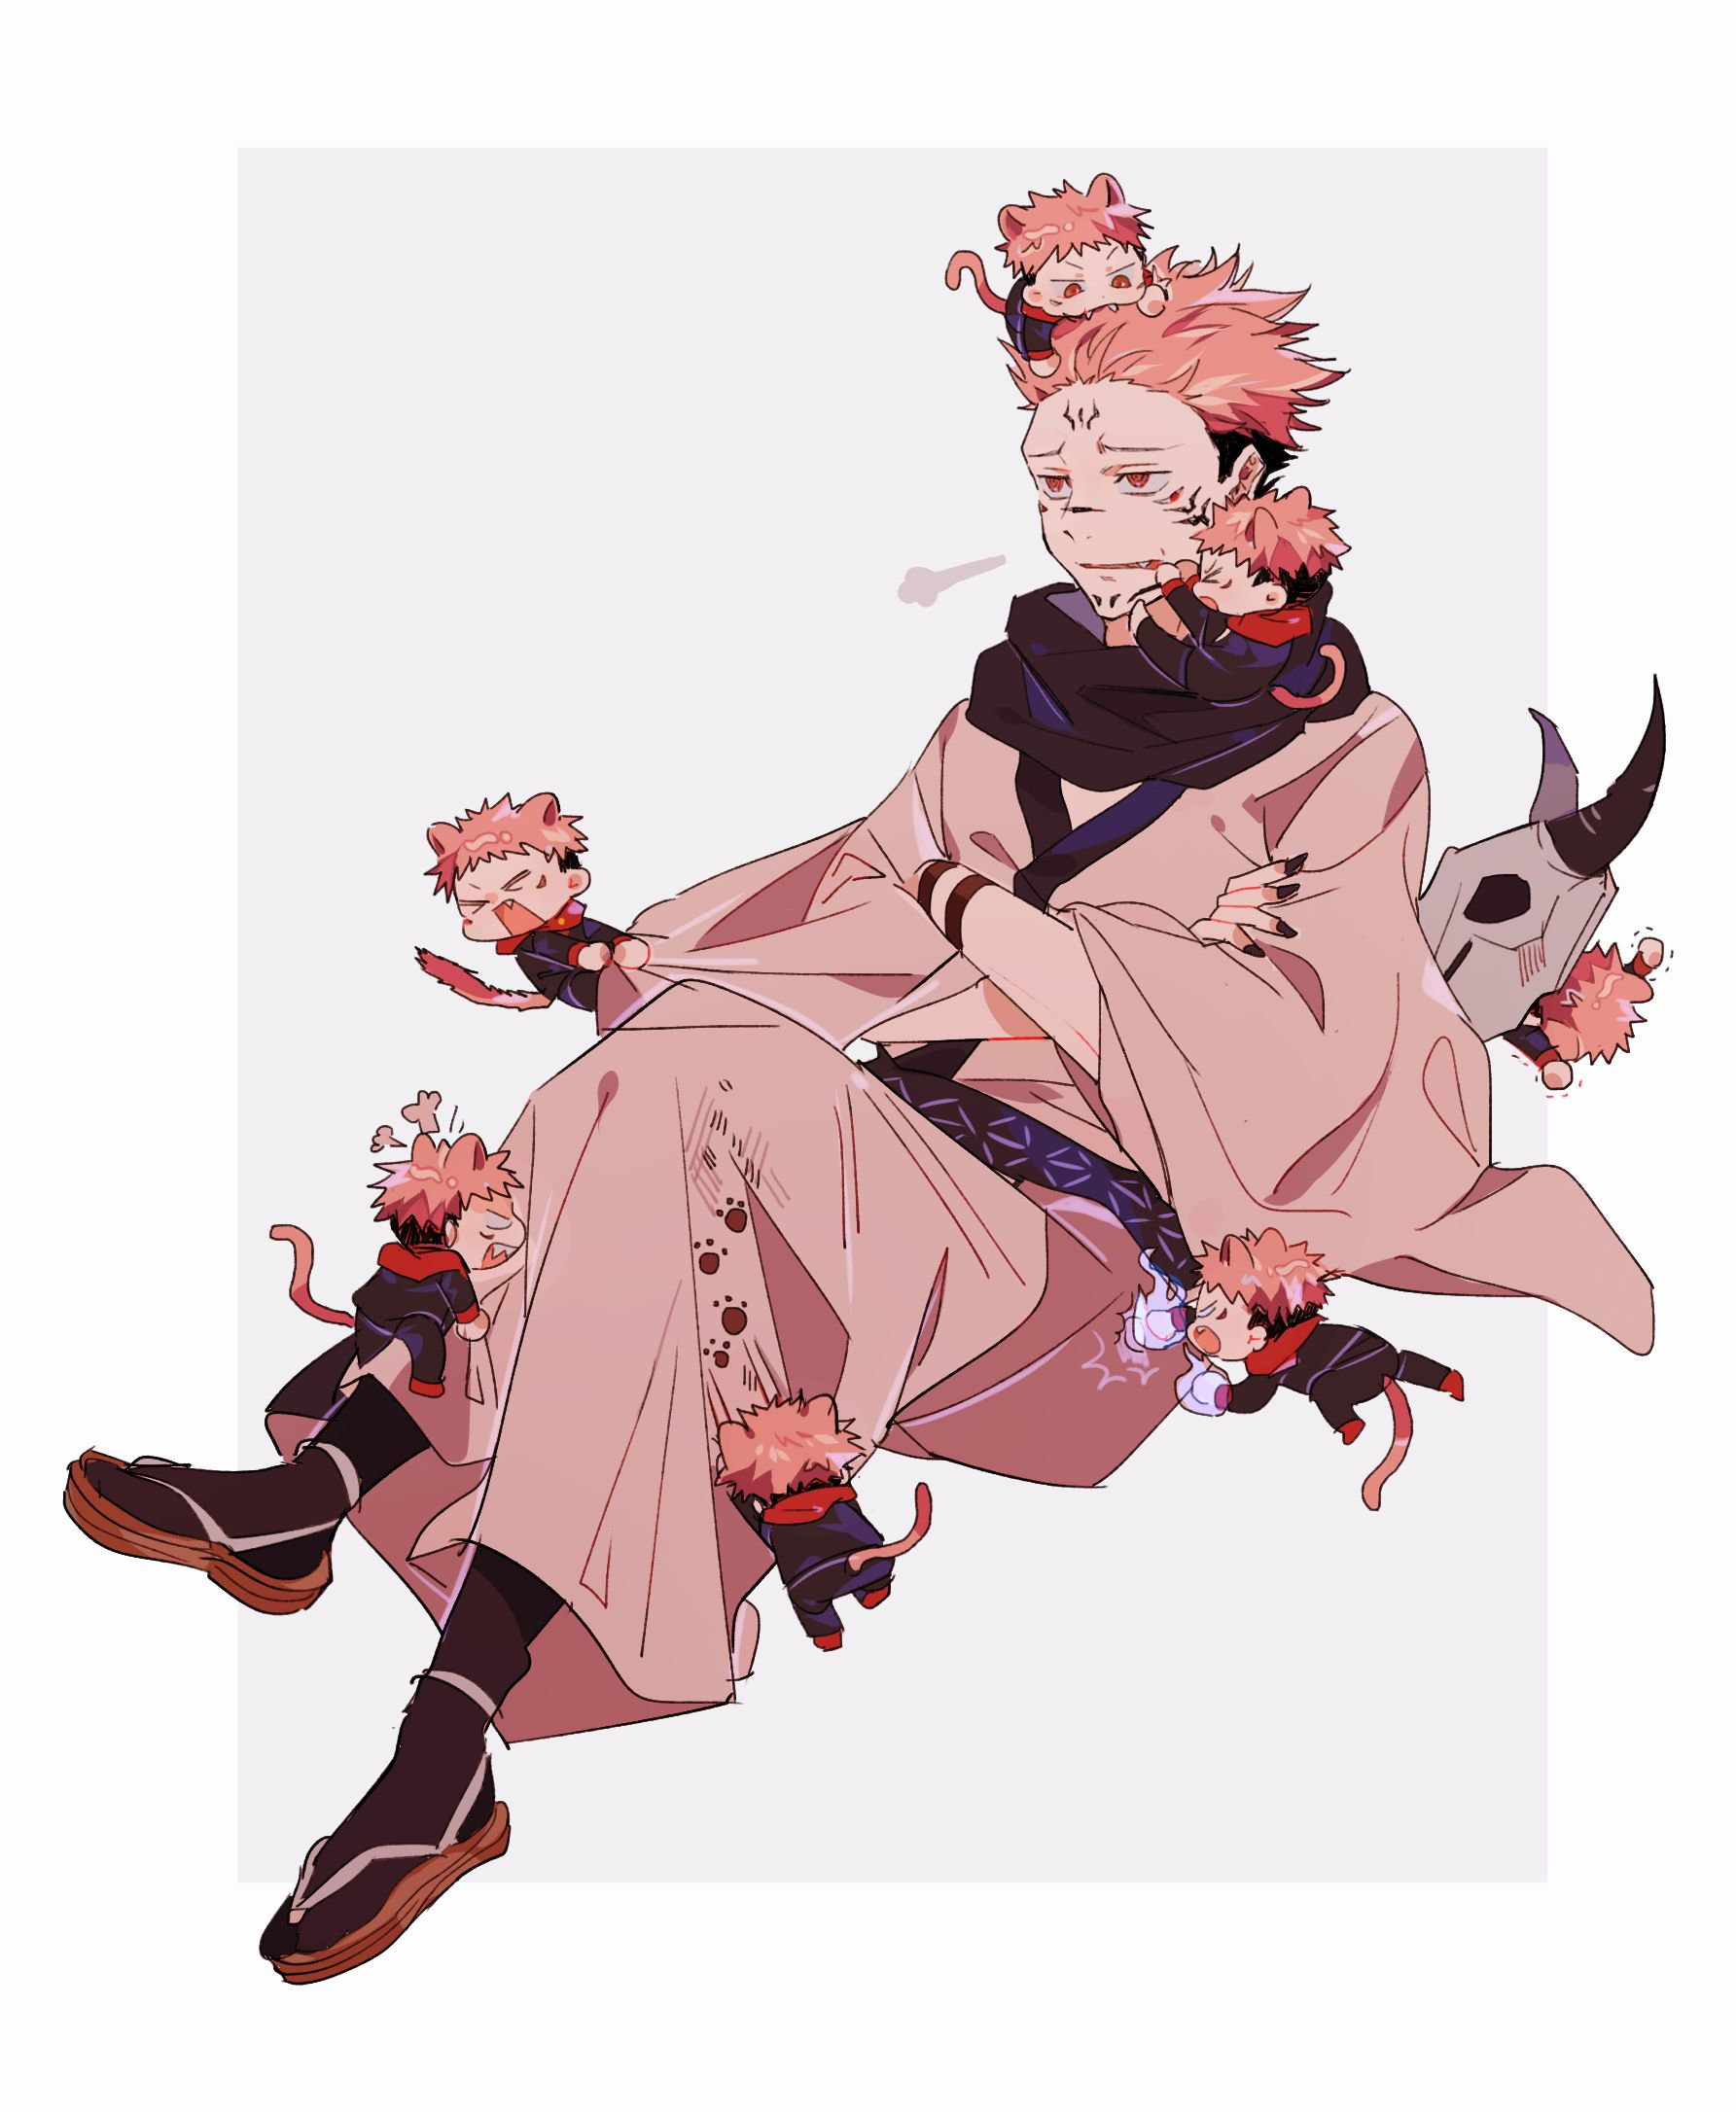 pin by chelsea torrente on anime in 2021 jujutsu anime baby anime